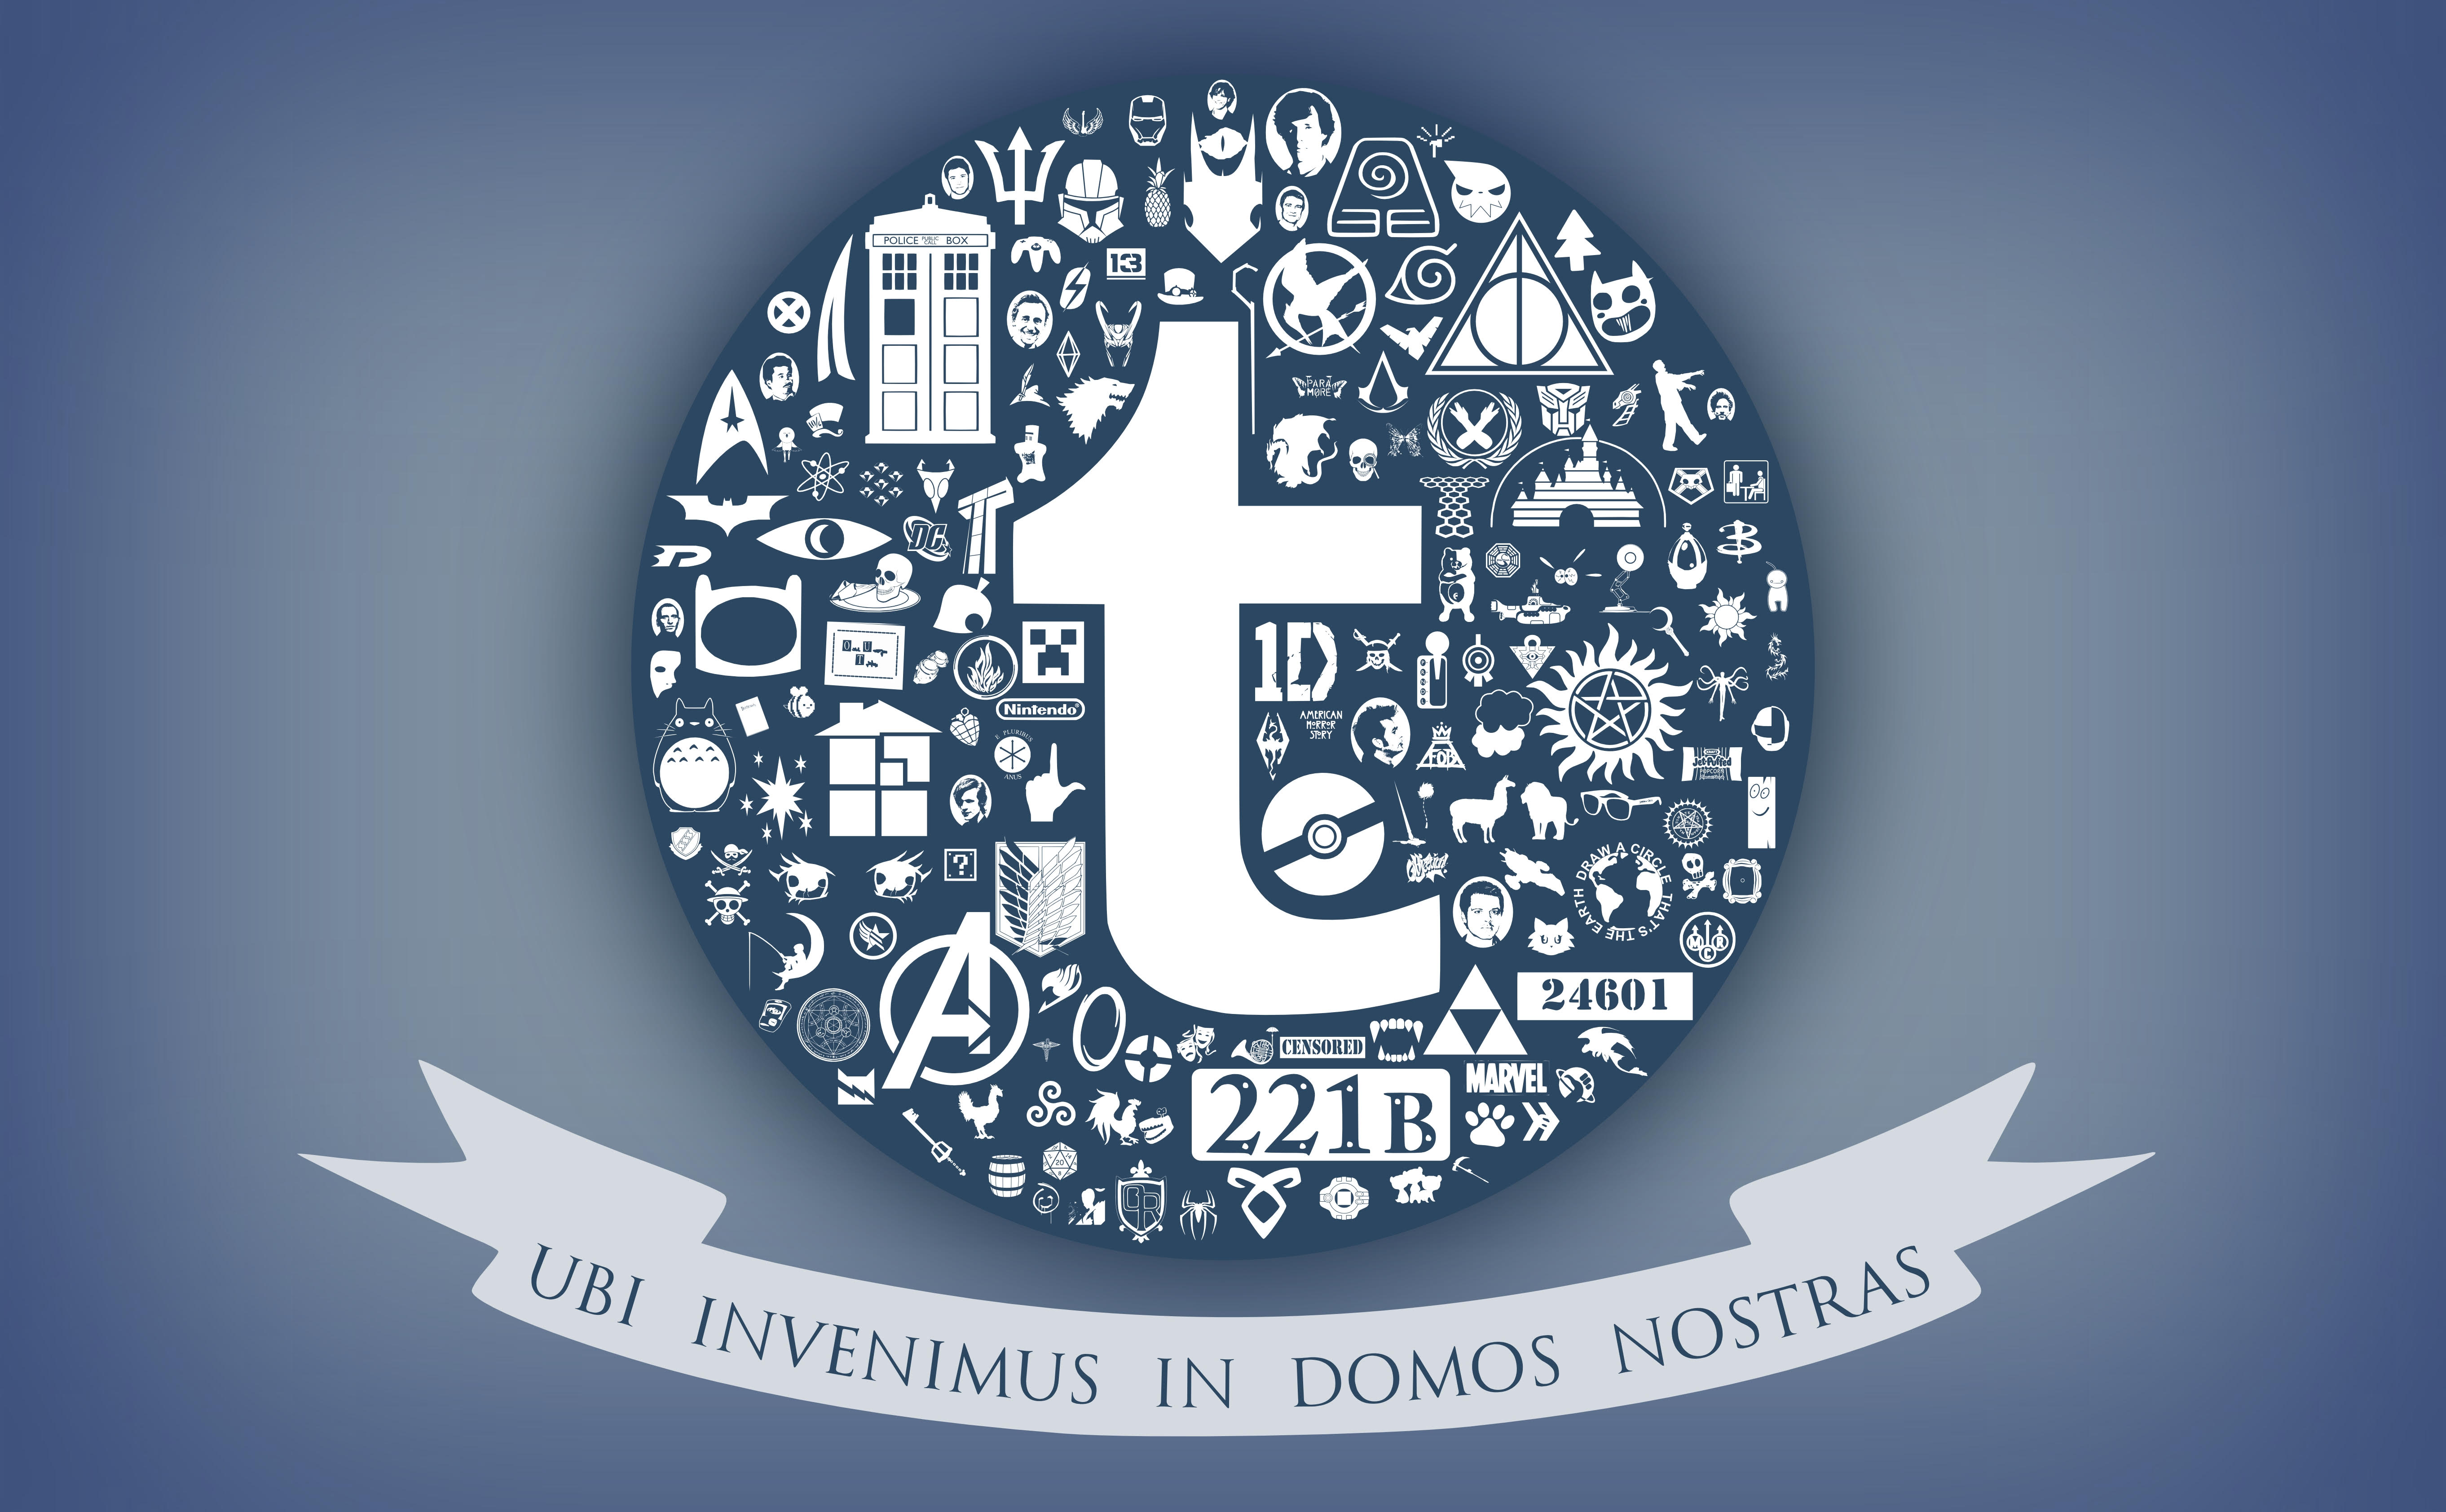 "Tumblr-blue image with symbols of various fandoms surrounding a lowercase t in Tumblr's font. Text underneath reads ""Ubi invenimus in domos nostras"" (Here we found our homes)."